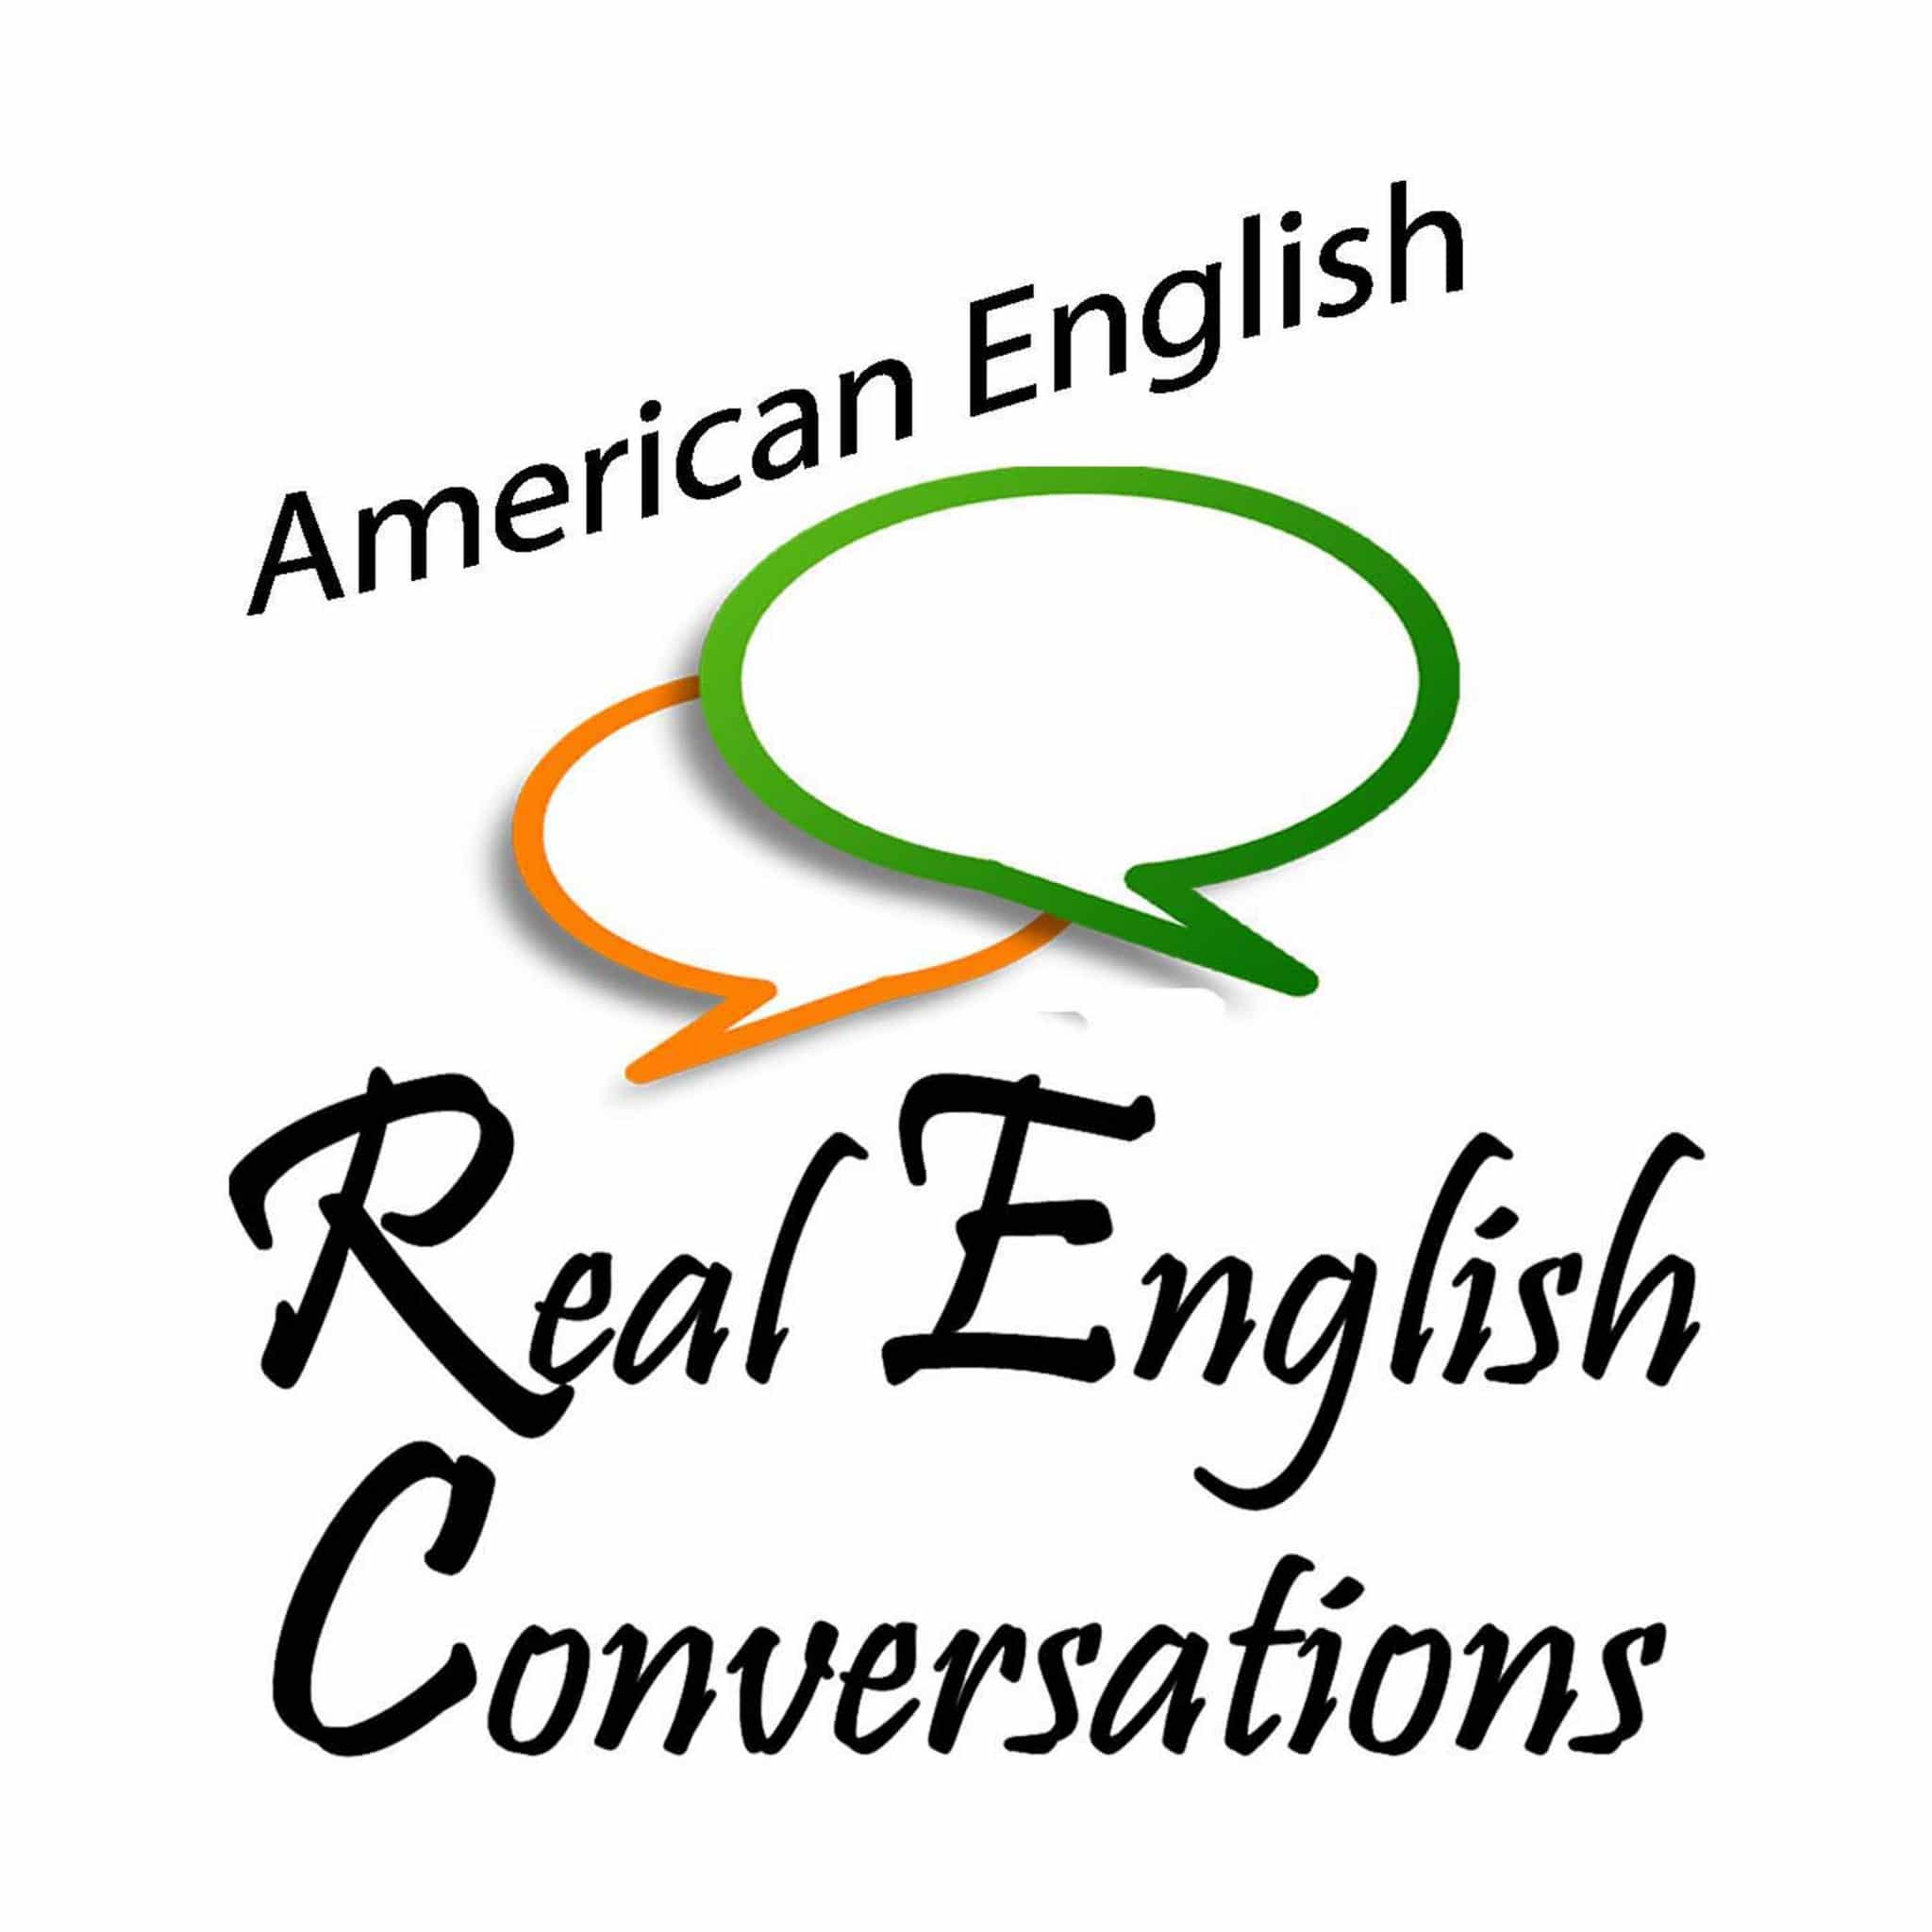 Mother Nature – English Podcast Conversation Lesson - Real English